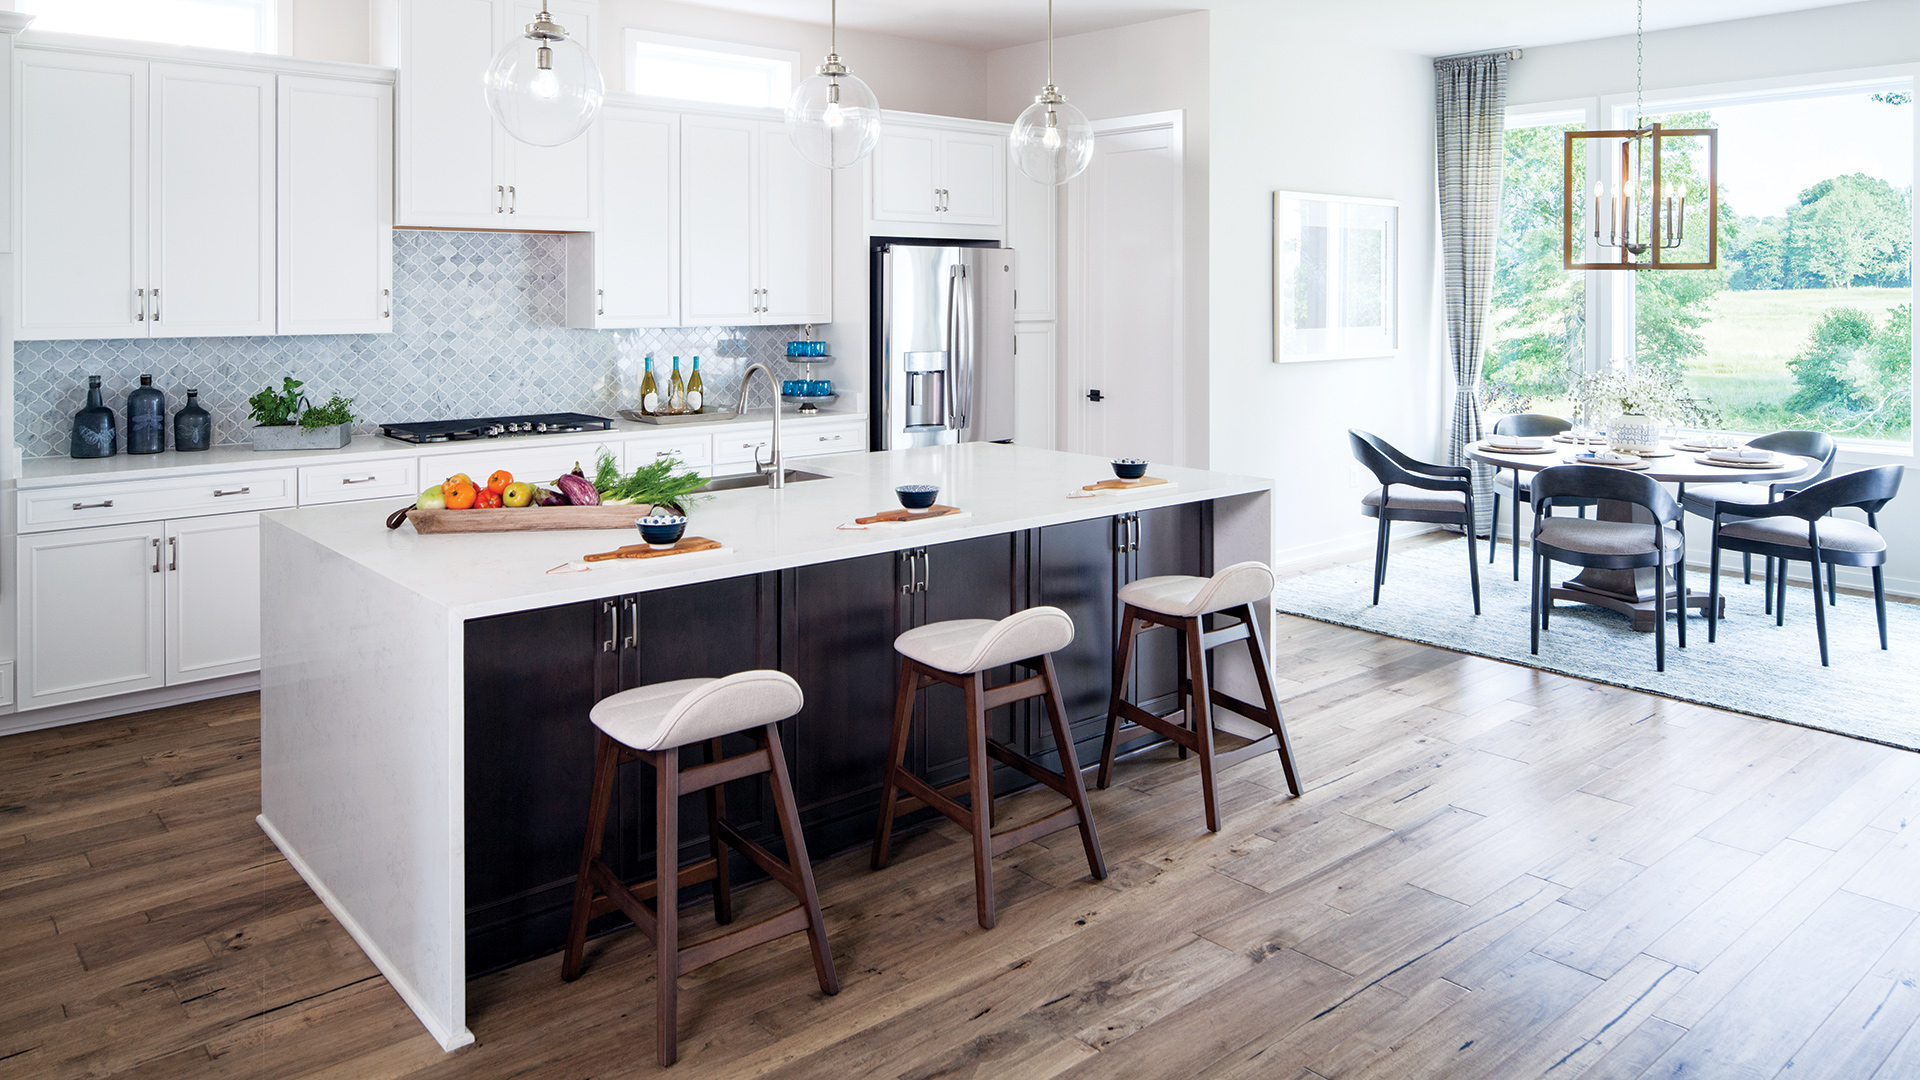 Well-appointed kitchens with an abundance of cabinet and counter space